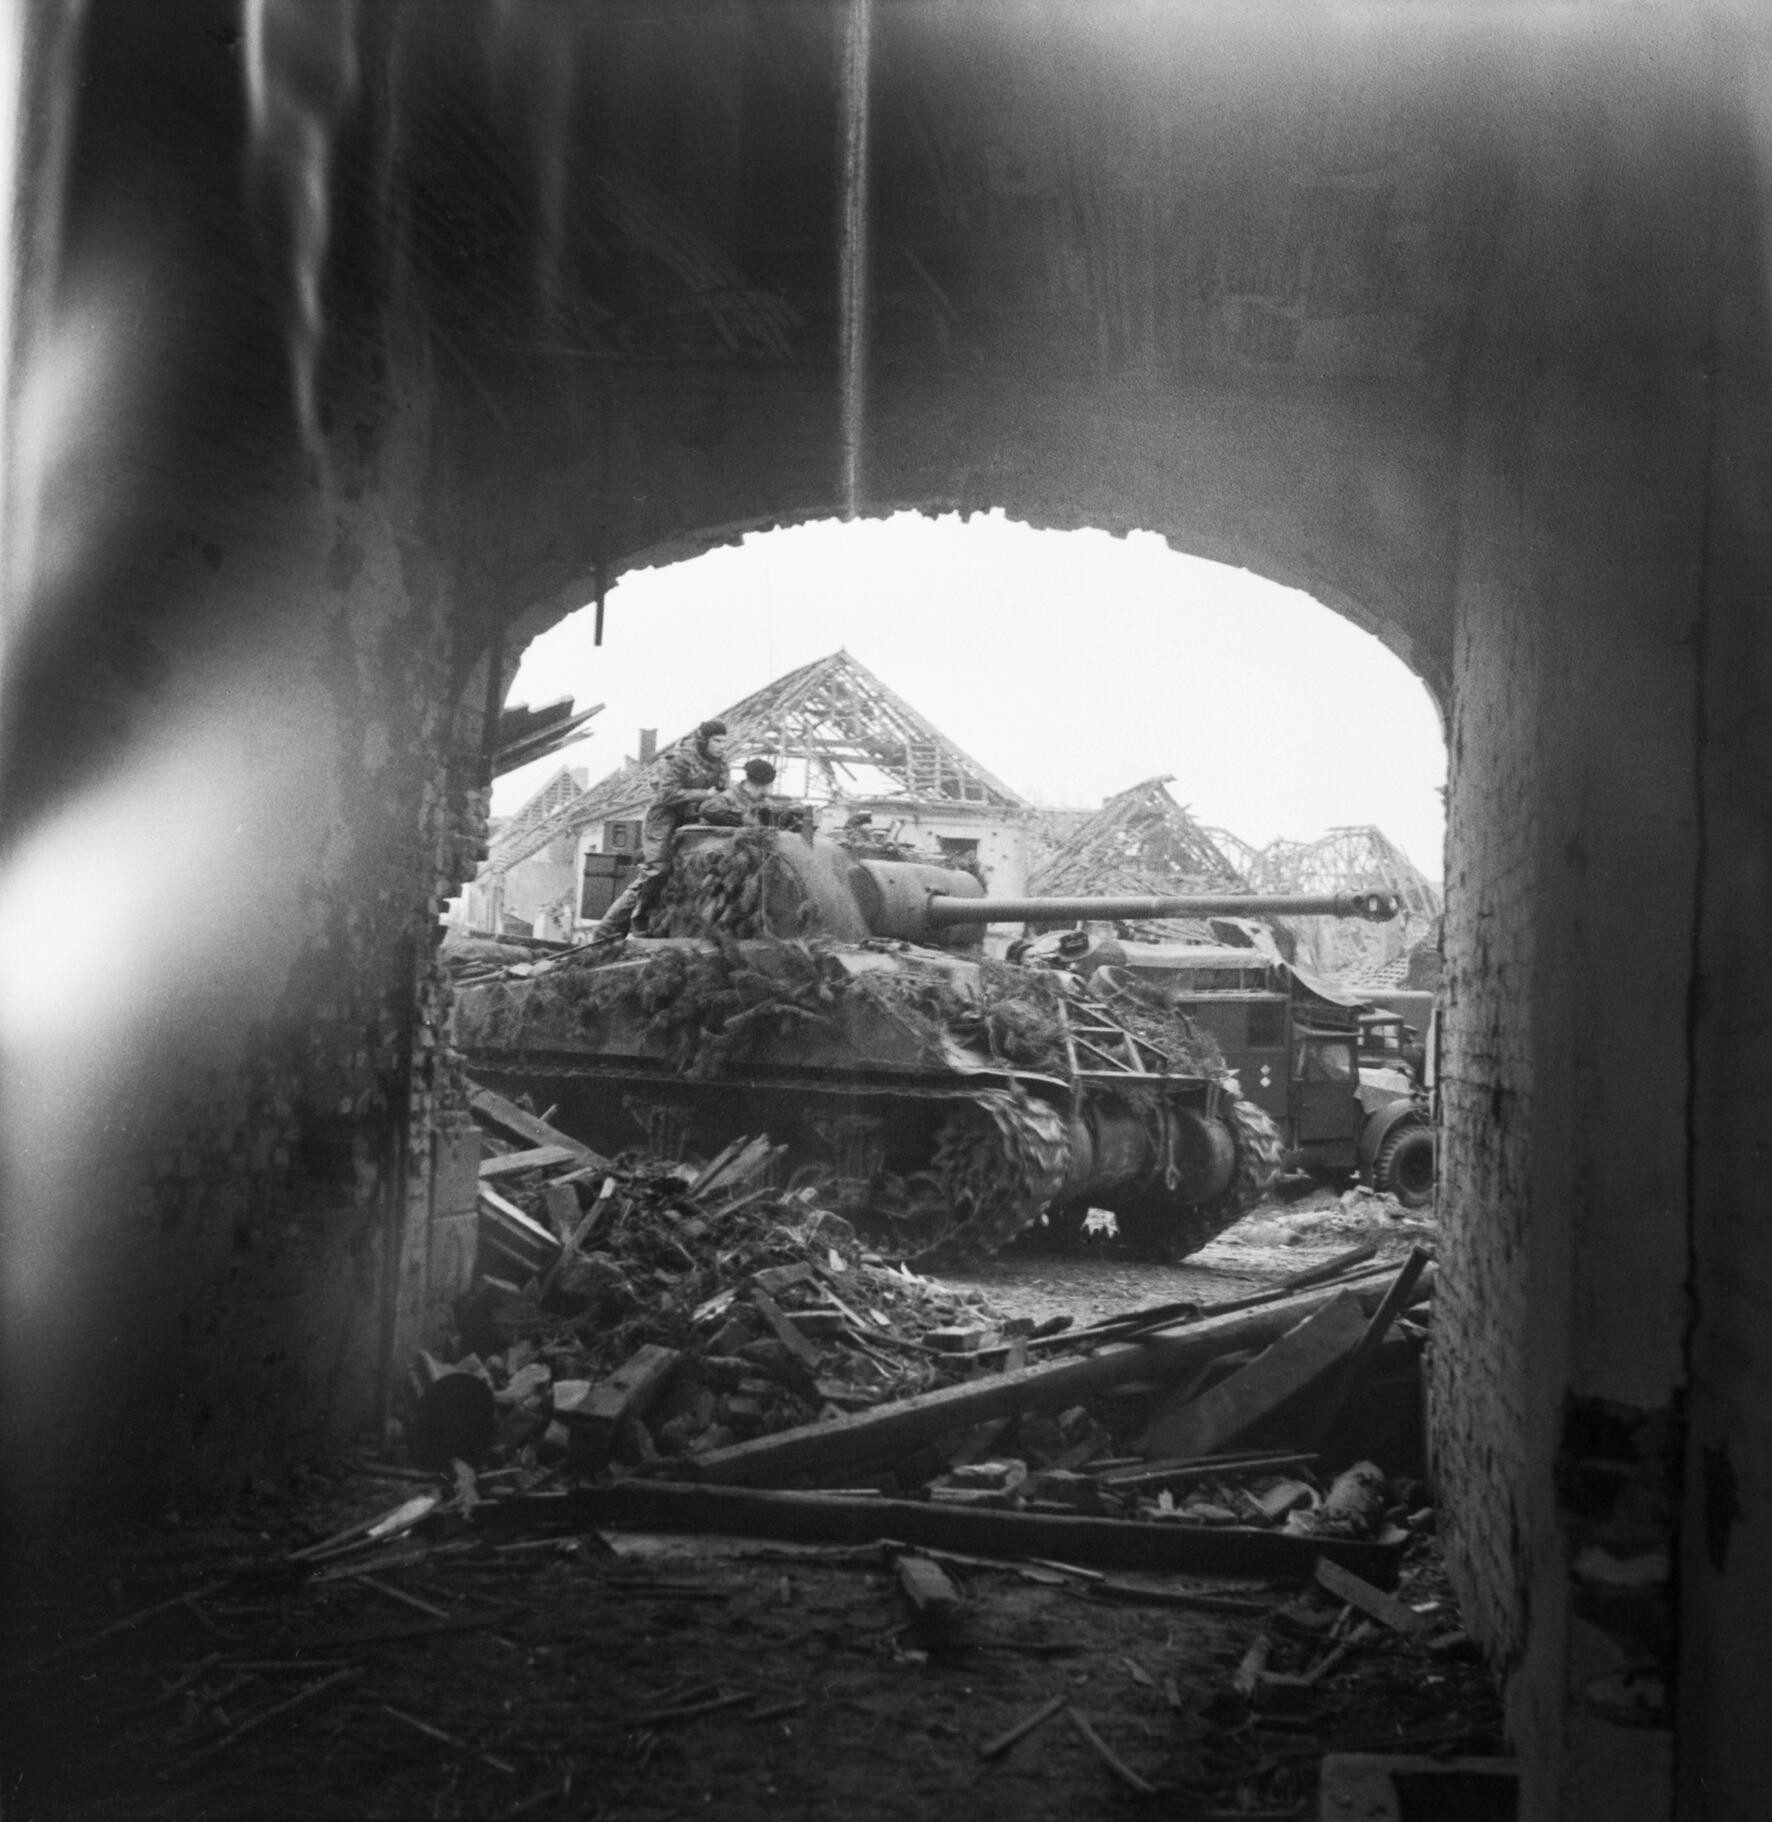 Sherman Firefly tank seen through an archway